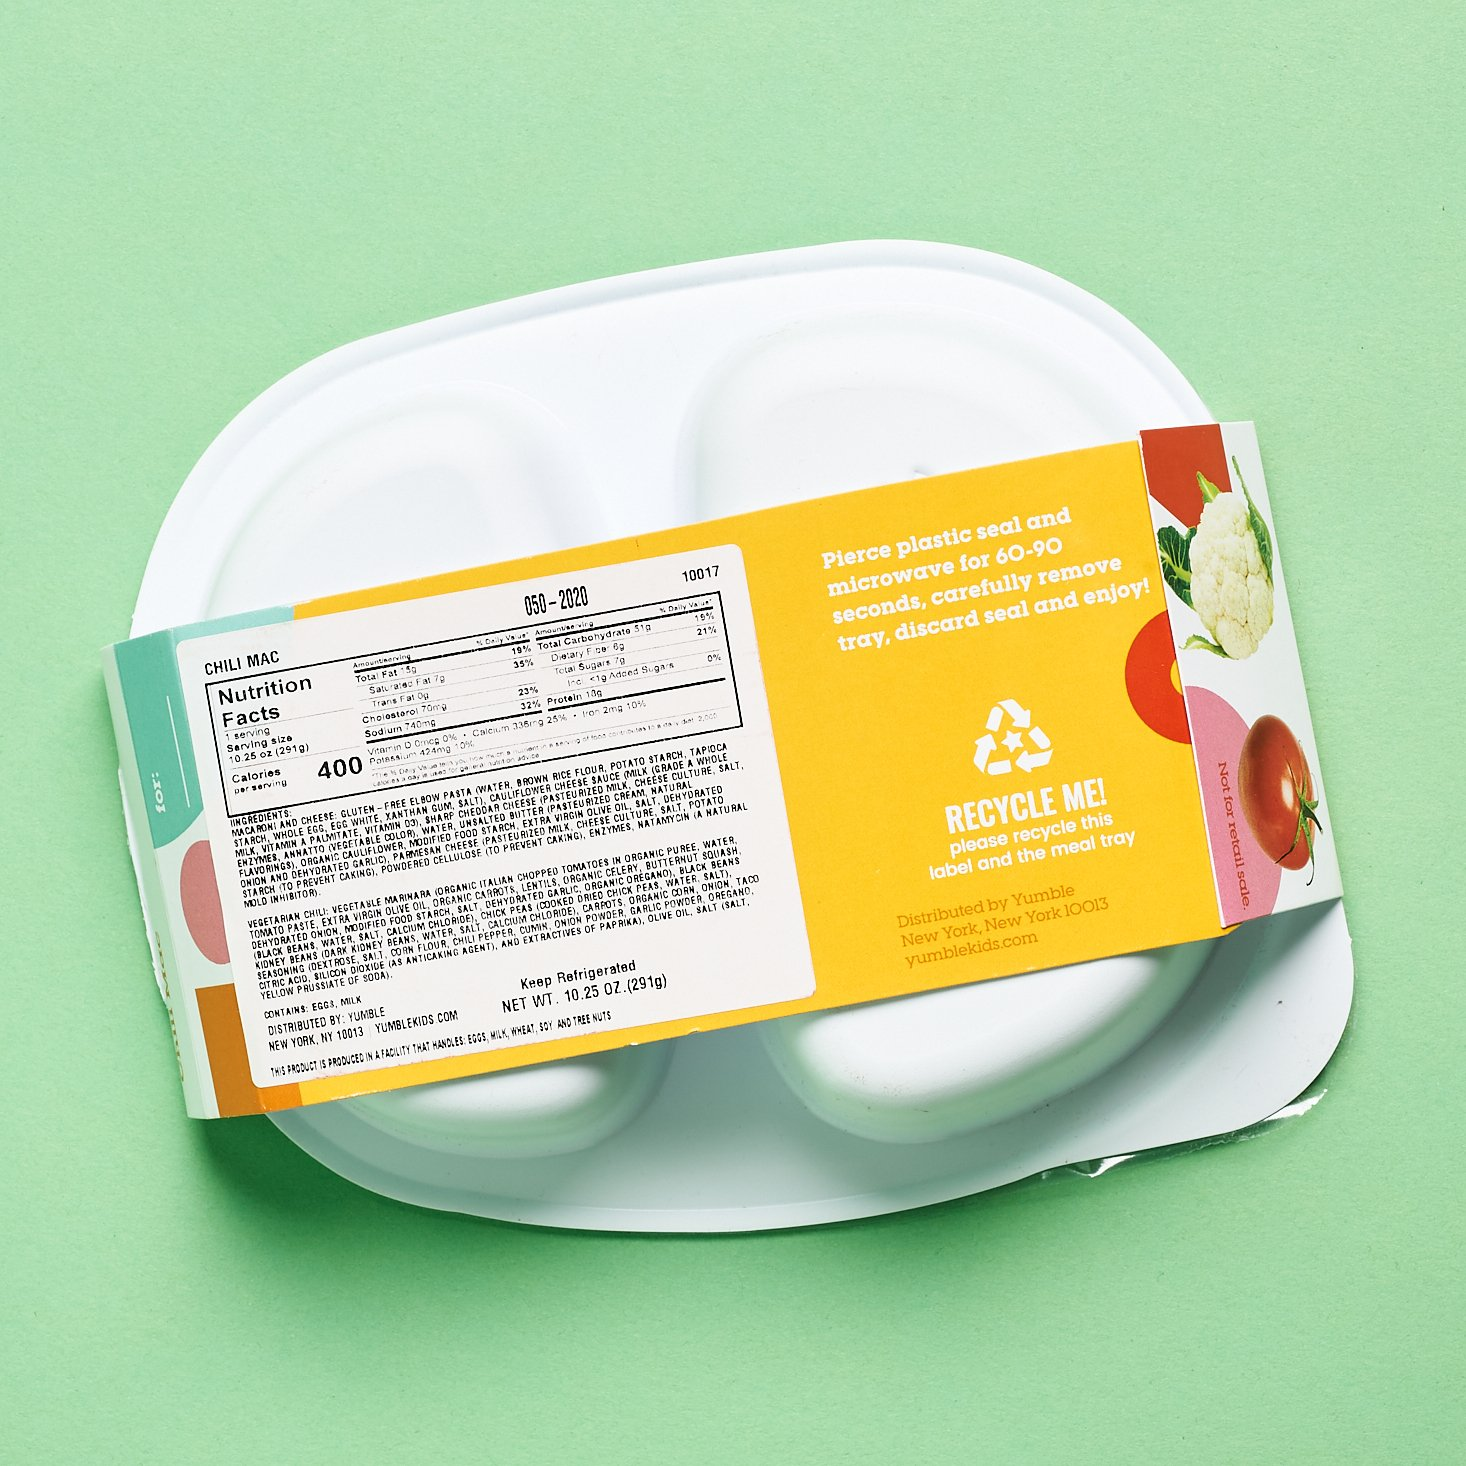 Yumble Subscription nutrition facts for chili mac kids meal